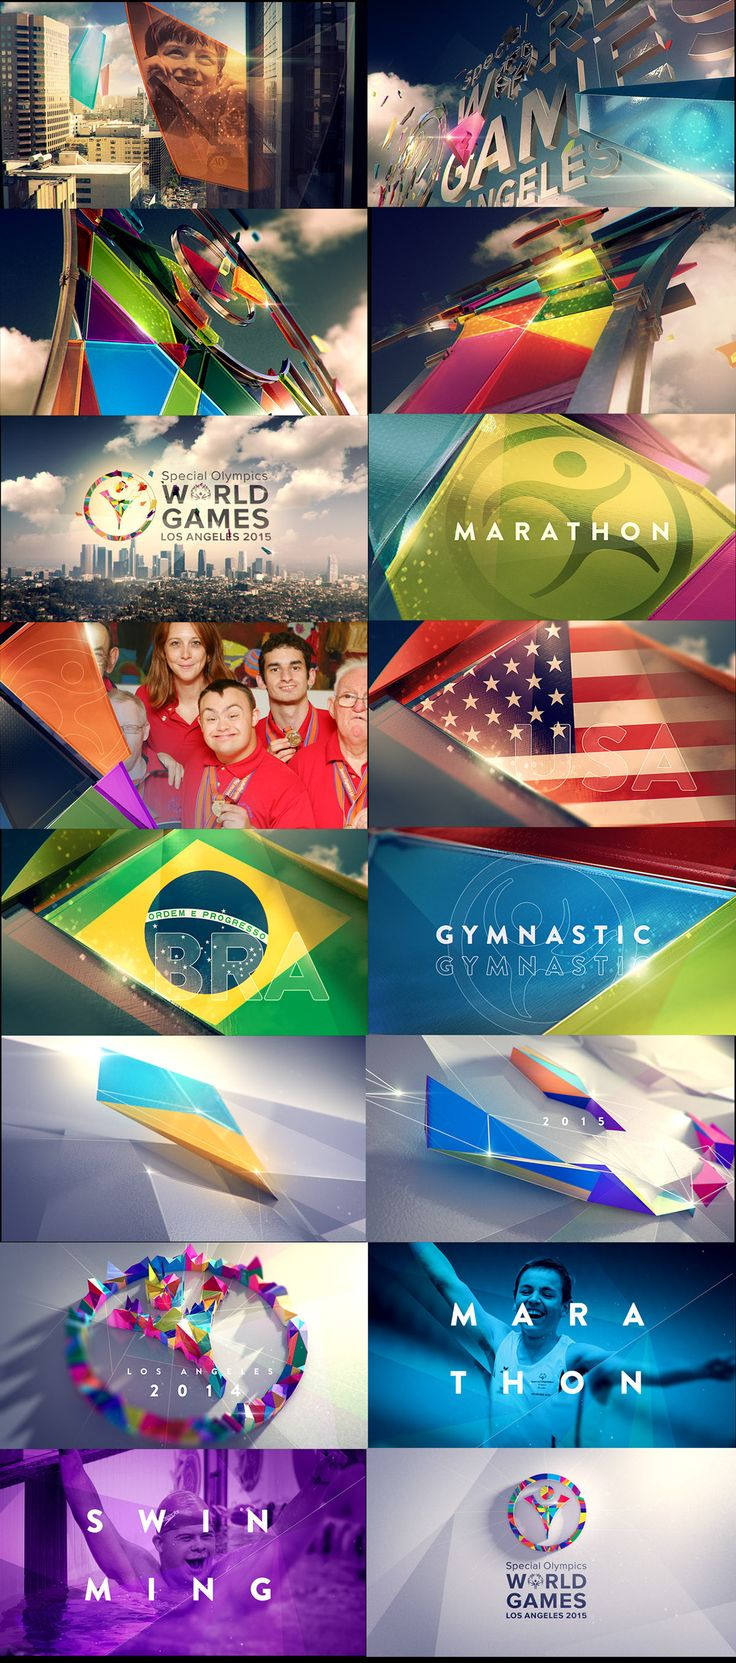 ESPN SPECIAL OLYMPICS 2015 on Behance. Motion graphics style frames for sports design